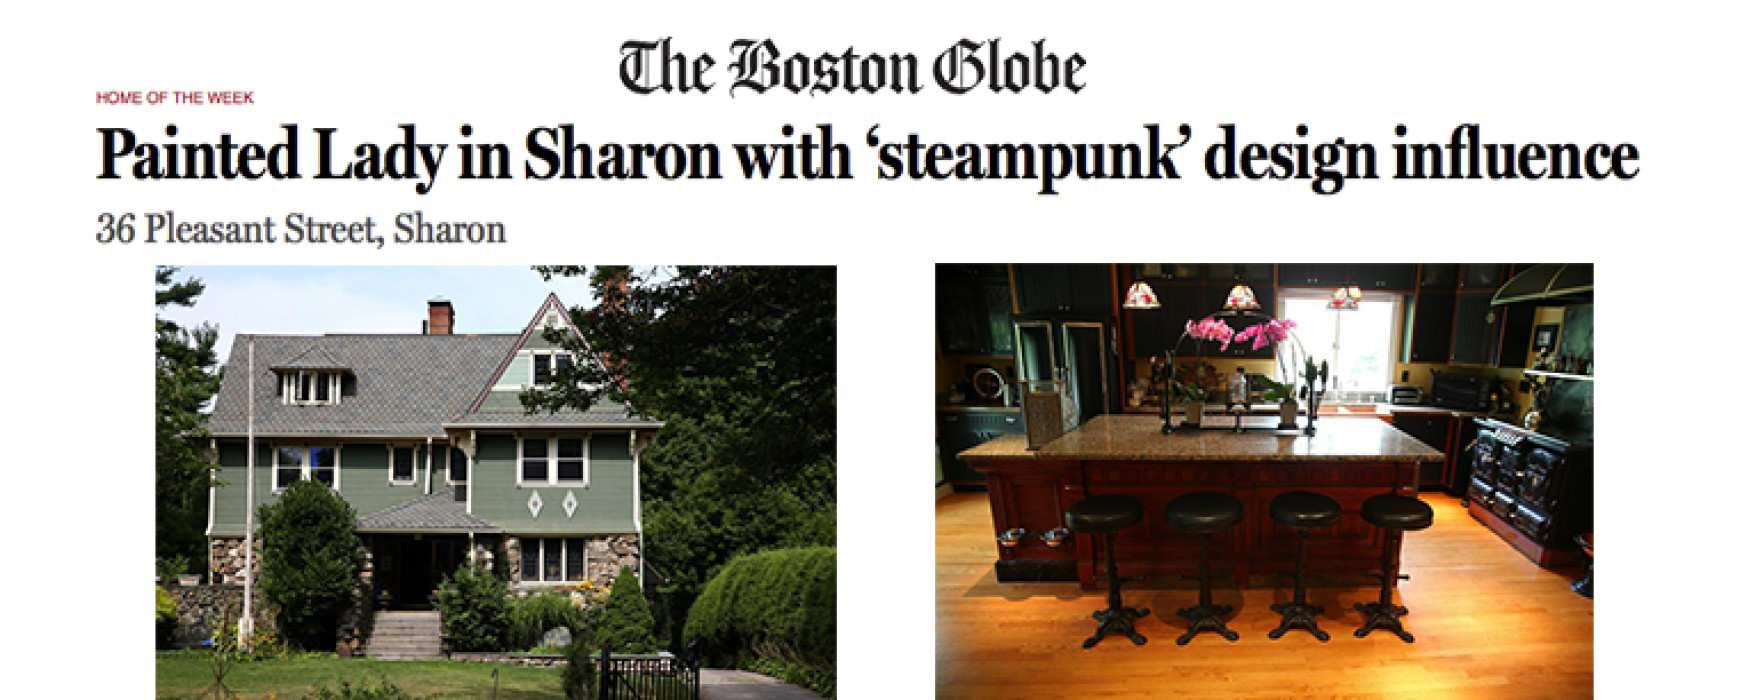 The Boston Globe : Painted Lady in Sharon with 'steampunk' design influence